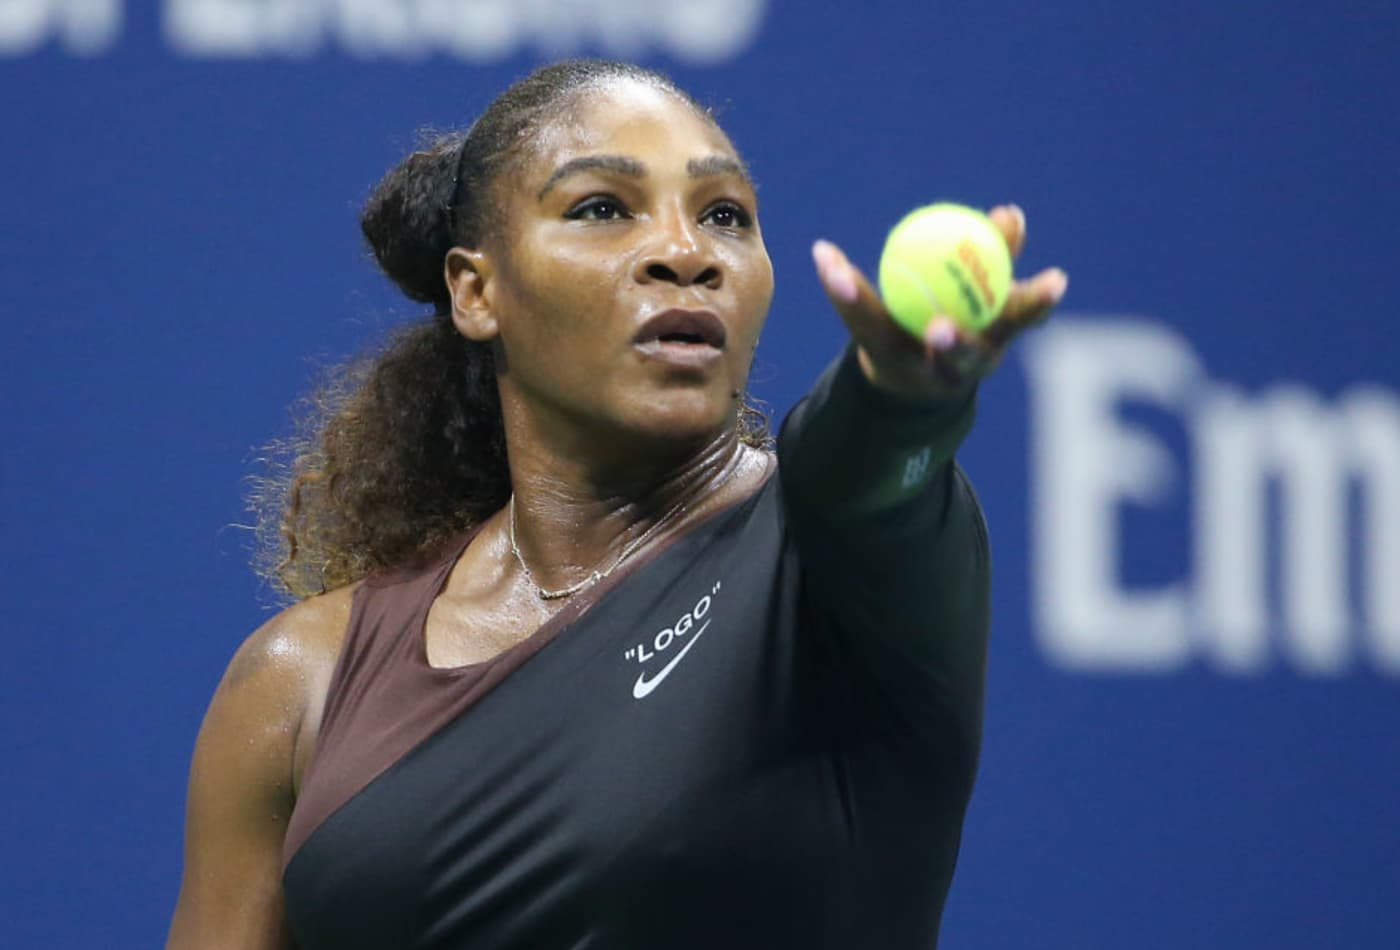 lesson about success in serena williams 39 nike ad. Black Bedroom Furniture Sets. Home Design Ideas